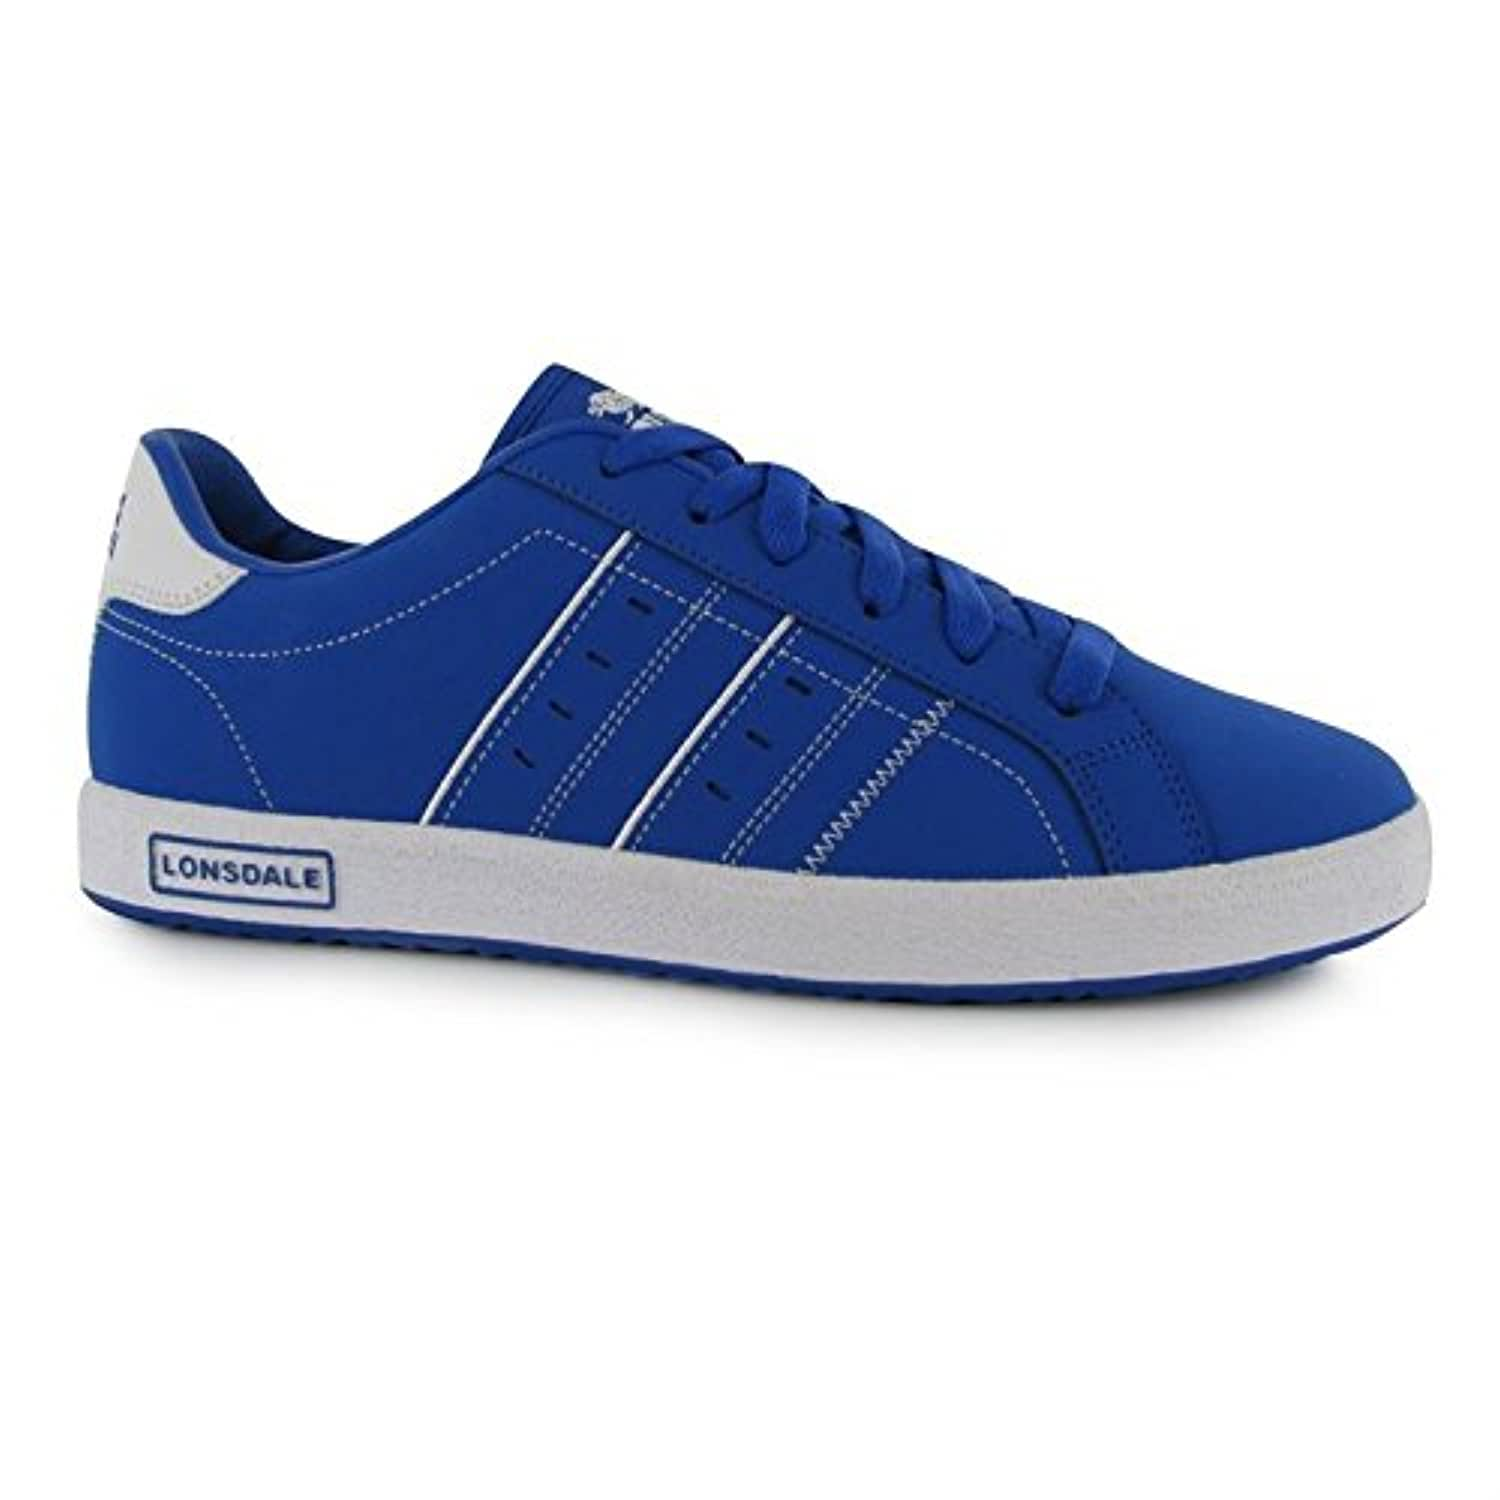 Lonsdale Kids Oval Trainers Junior Lace Up Ventilation Colour Contrasting Shoes Blue/White UK 3 (36)